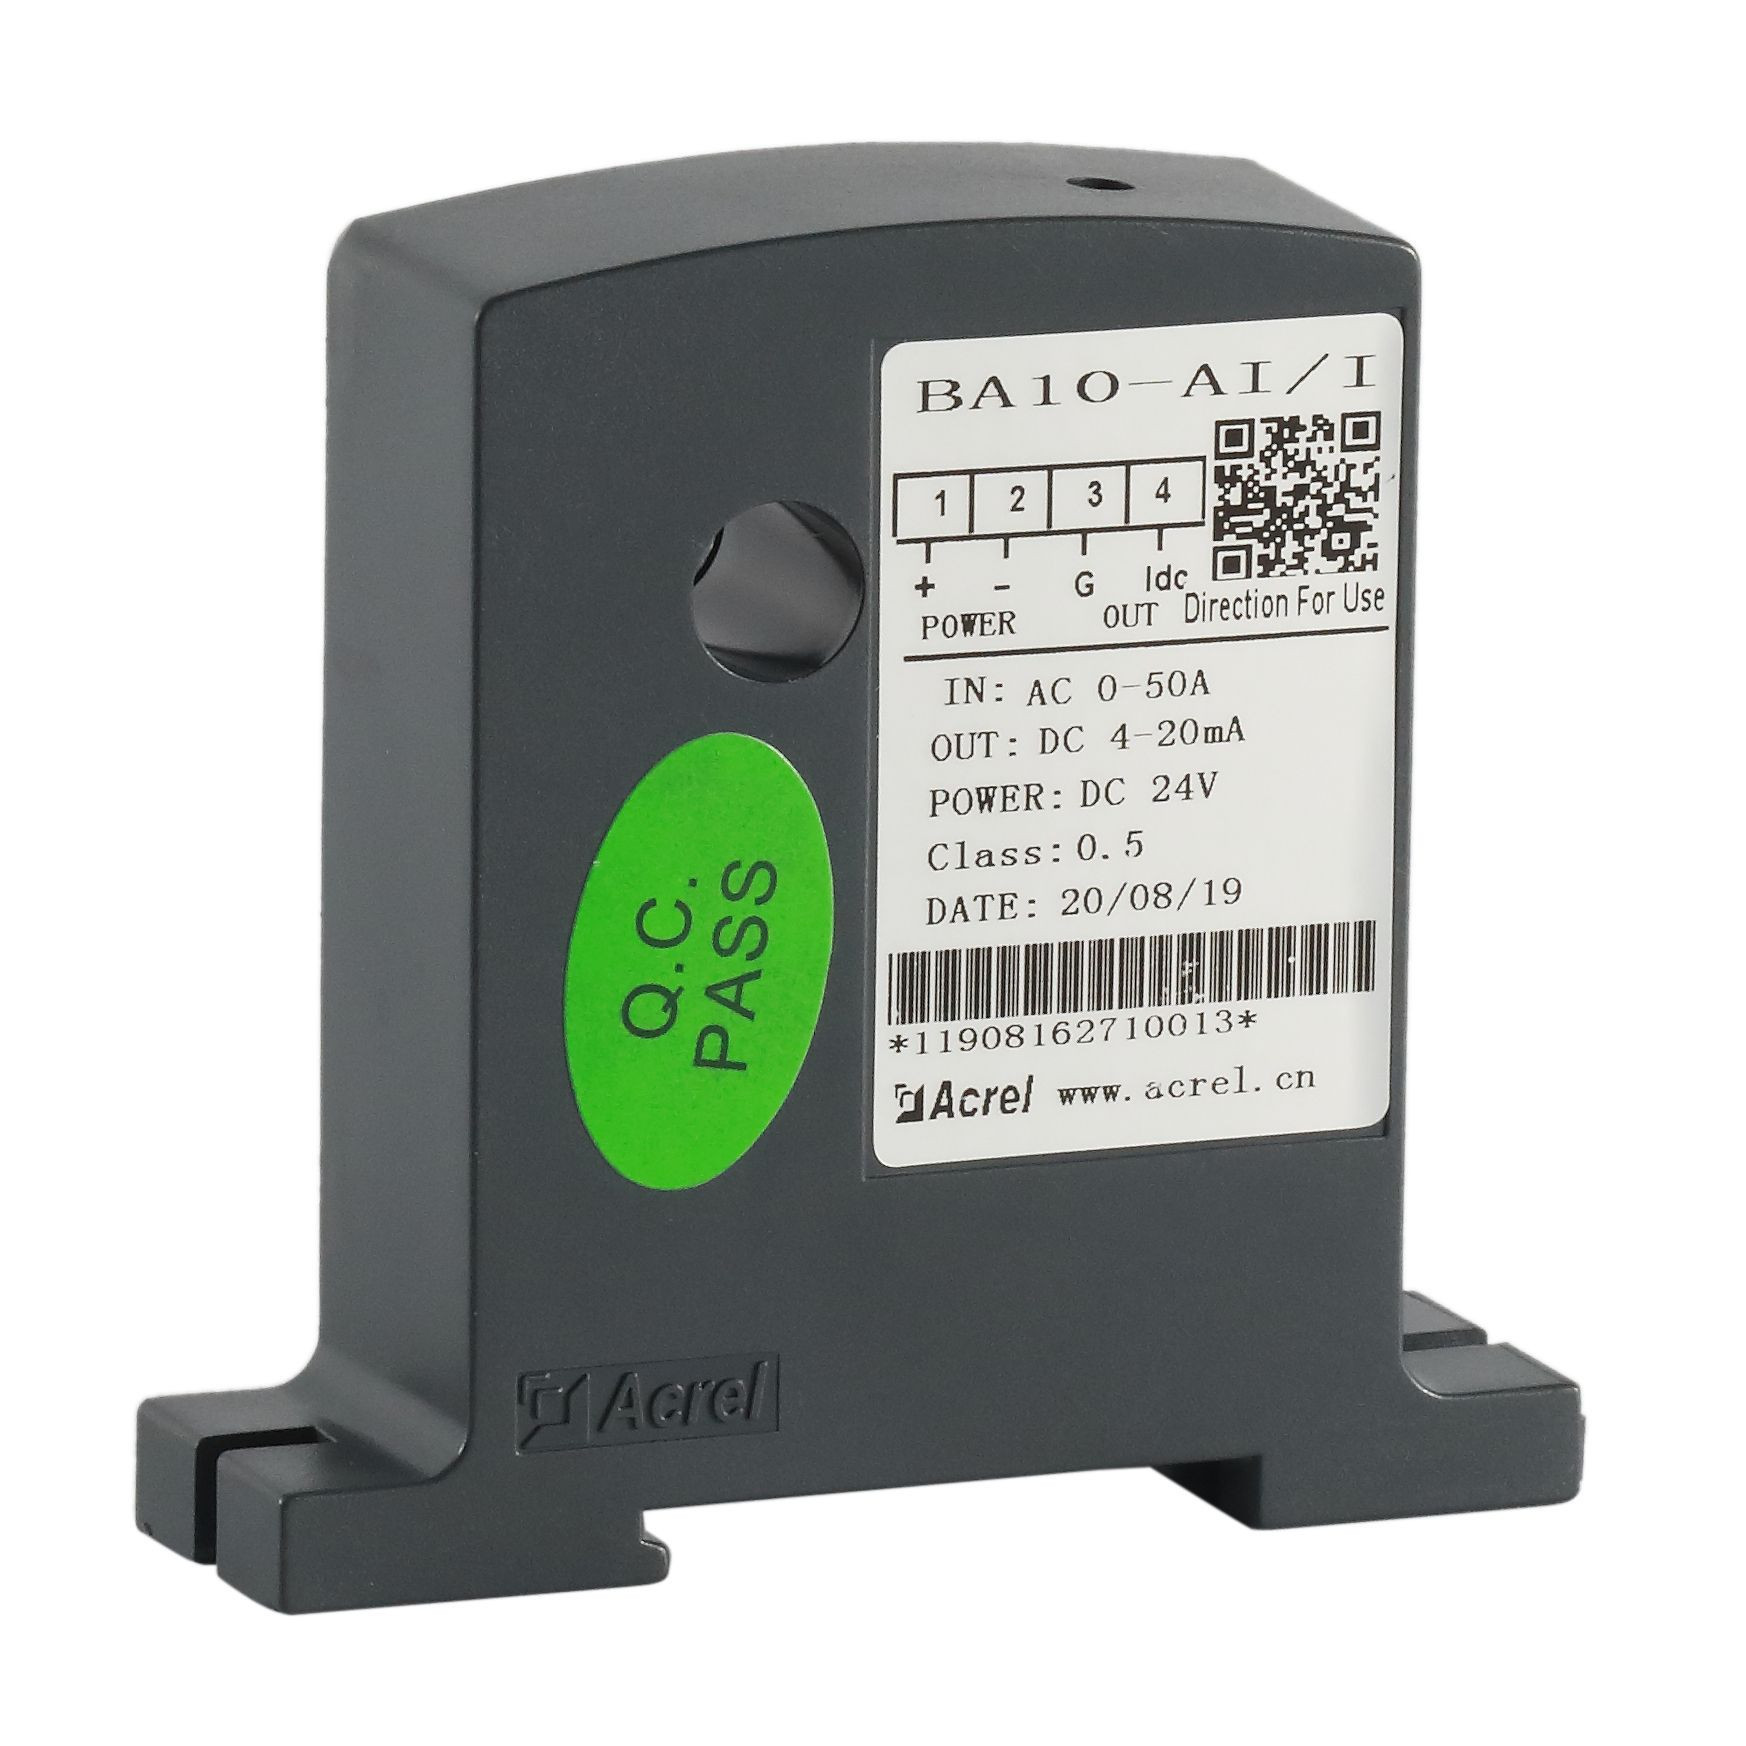 Acrel 300286.SZ direct-in AC current 0-50A current transmitter BA10- AI/I with 4-20mA analog output